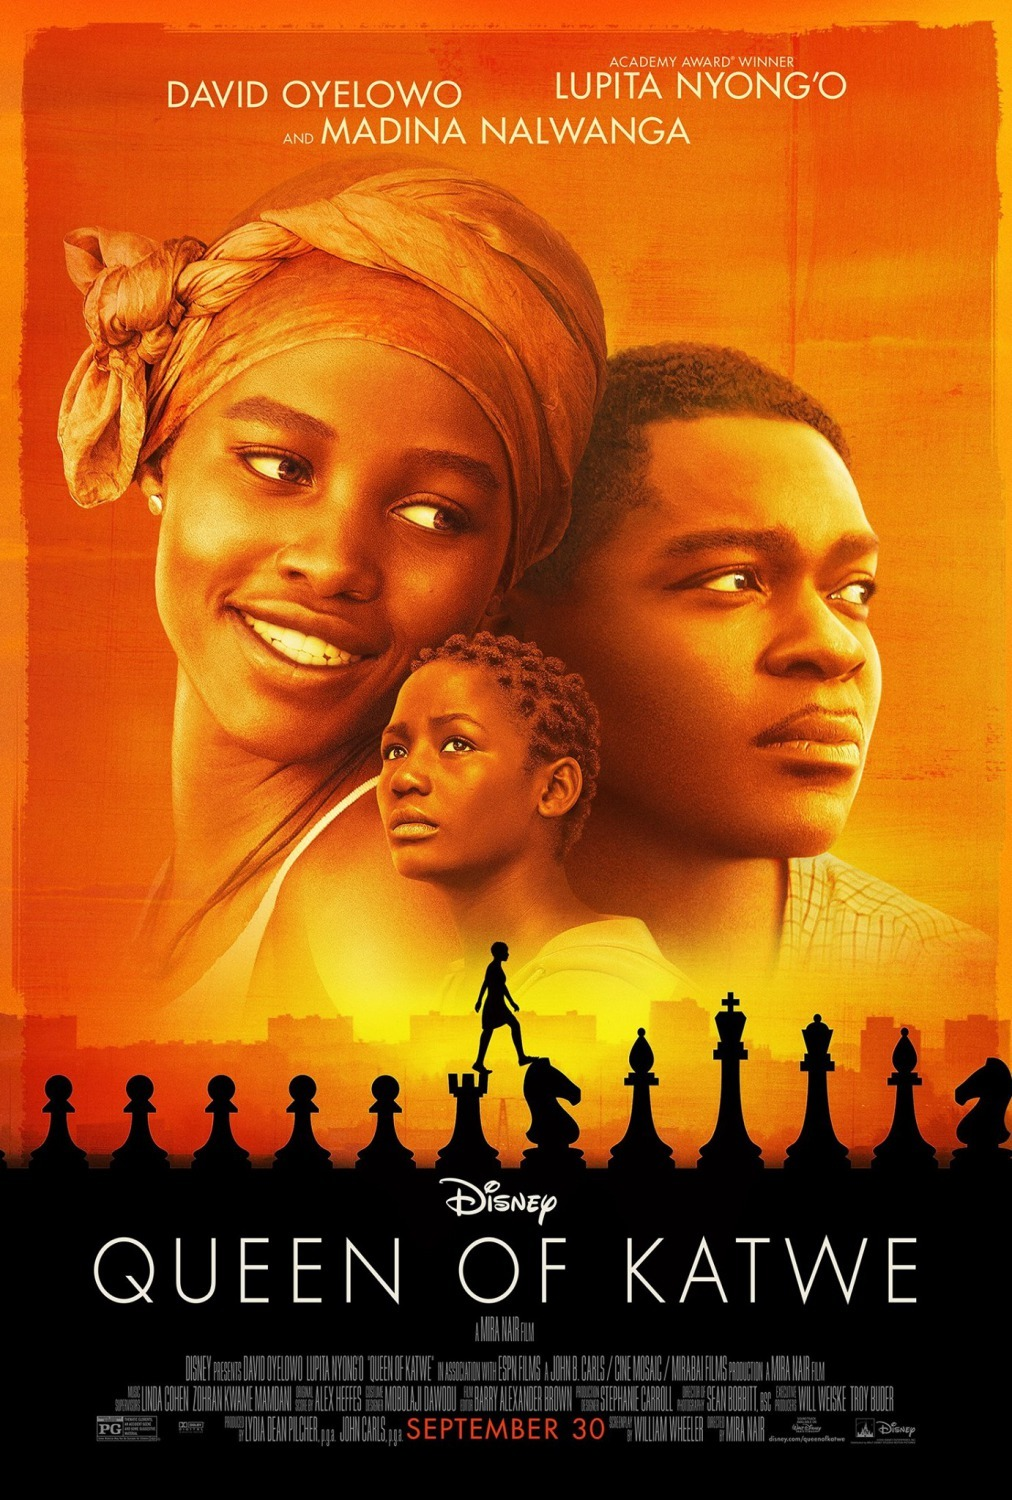 Queen of Katwe